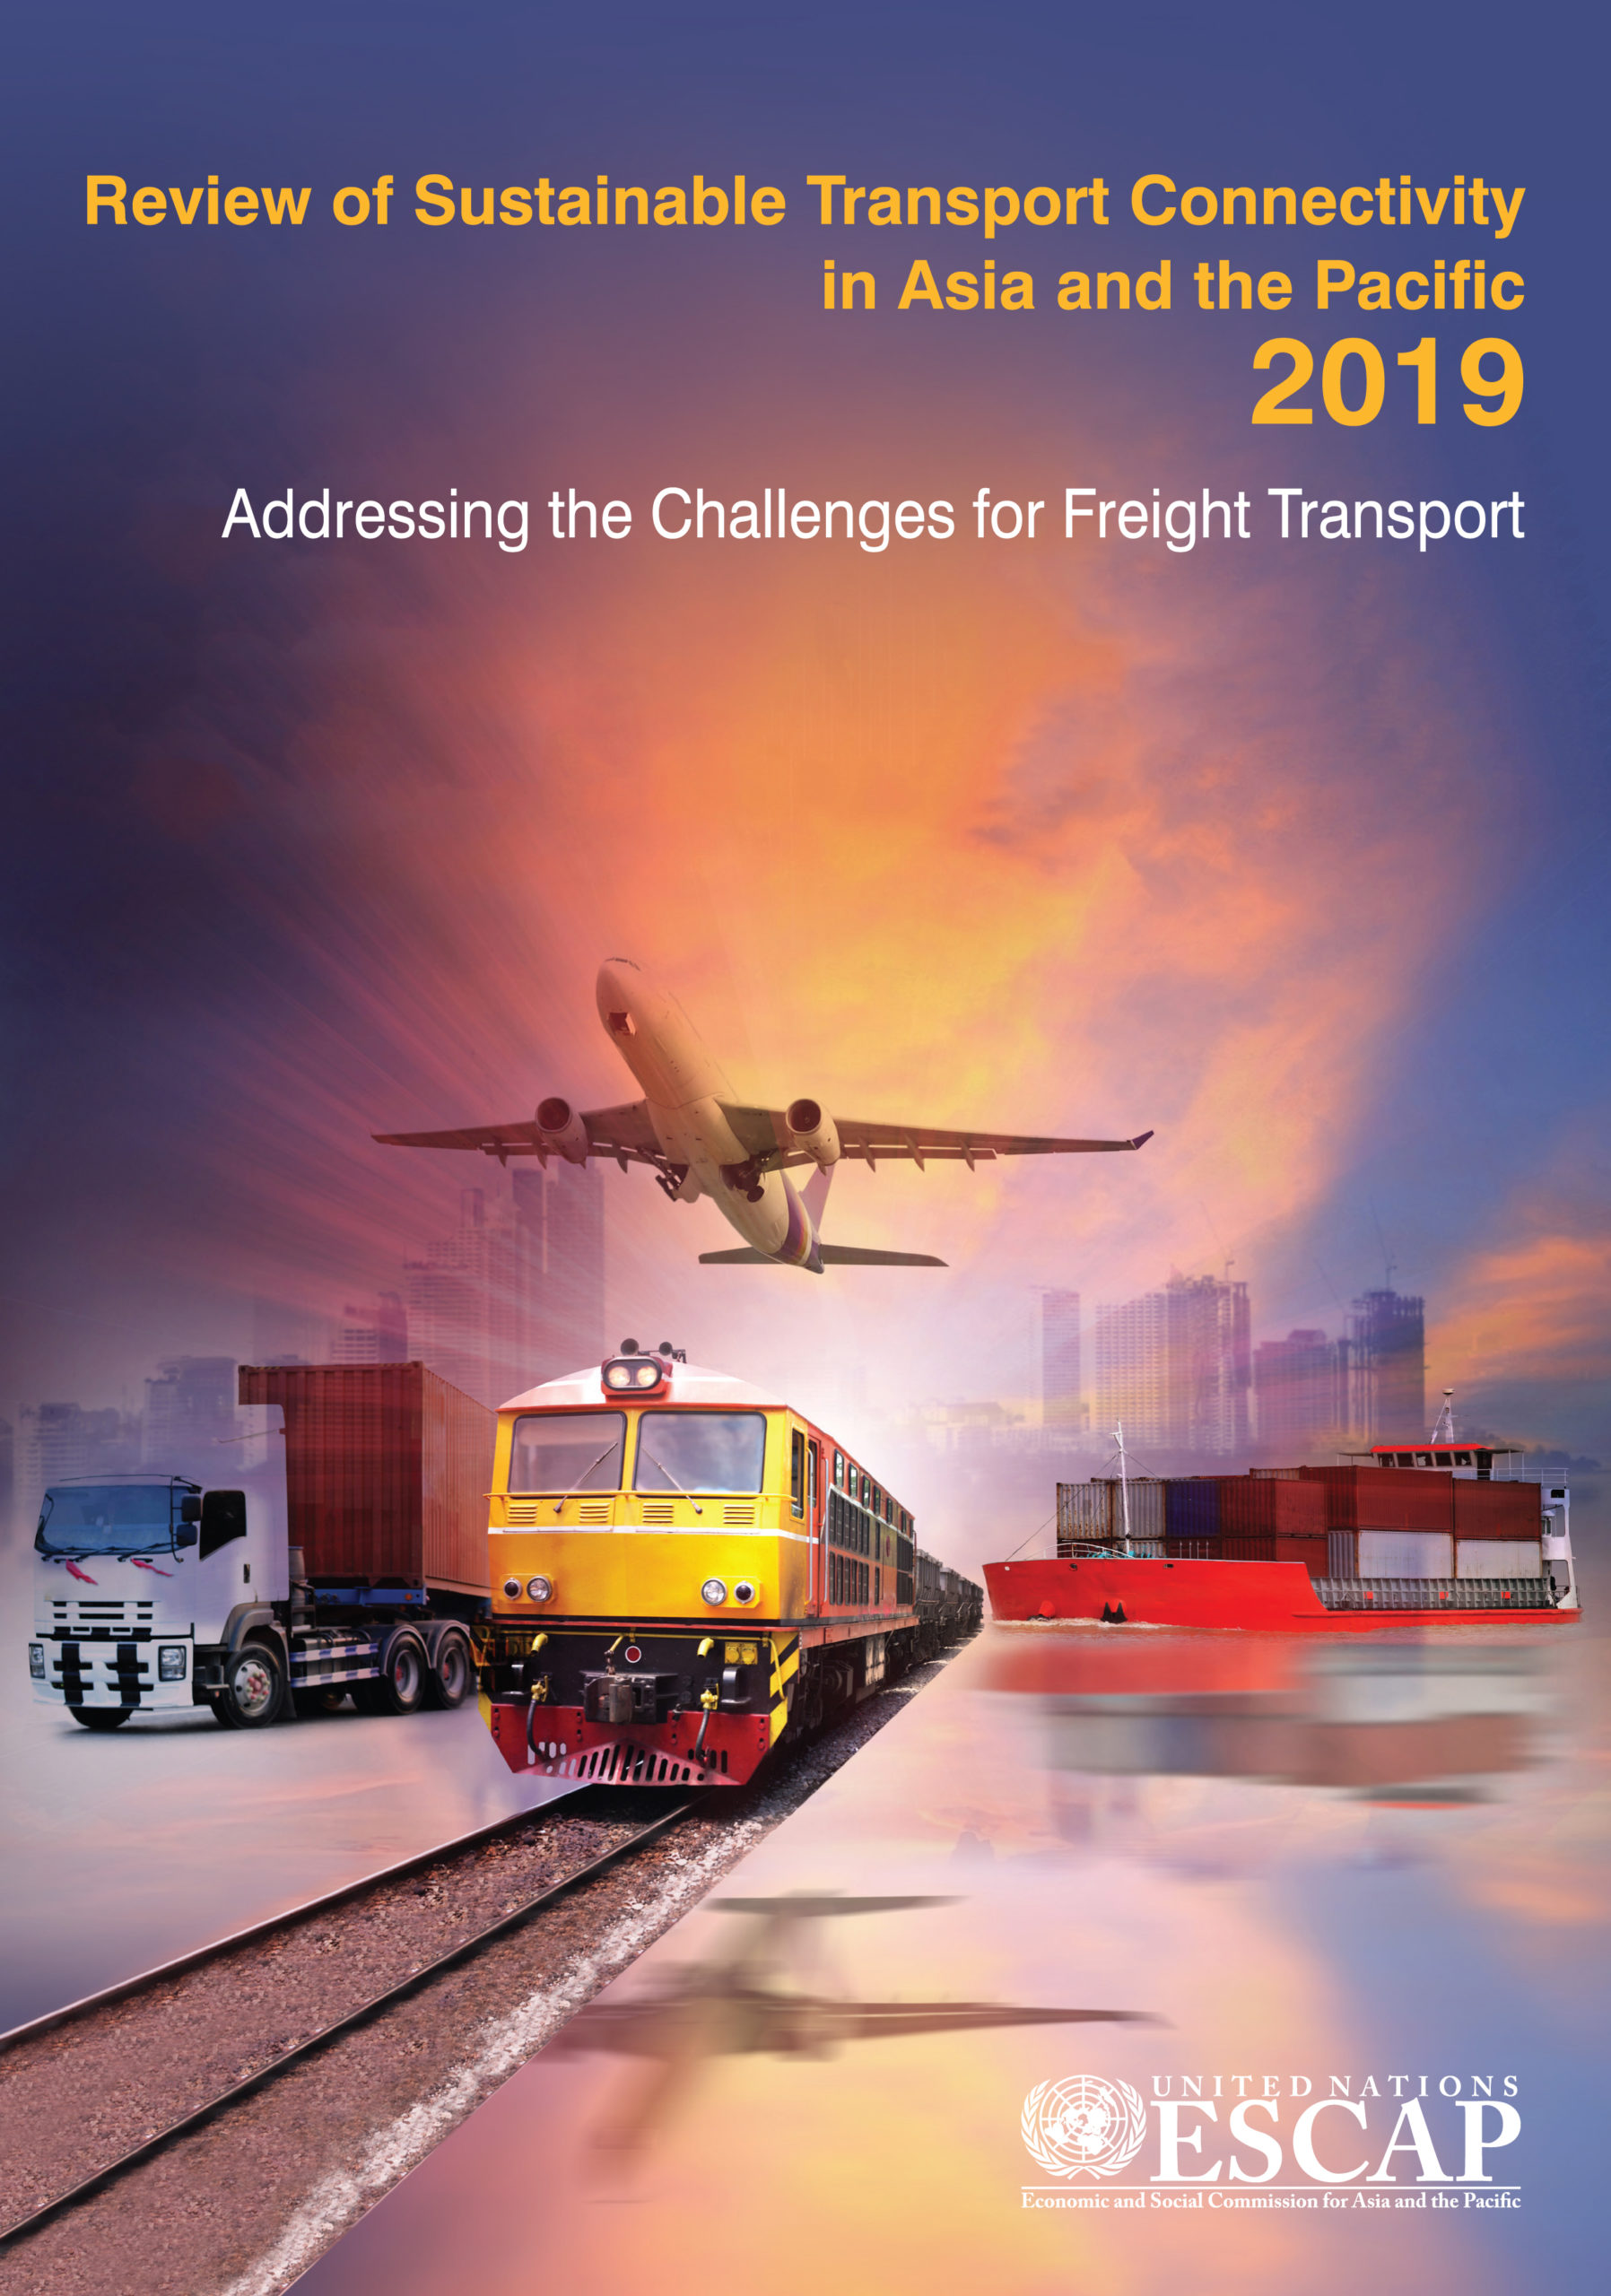 Review of Sustainable Transport Connectivity in Asia and the Pacific 2019